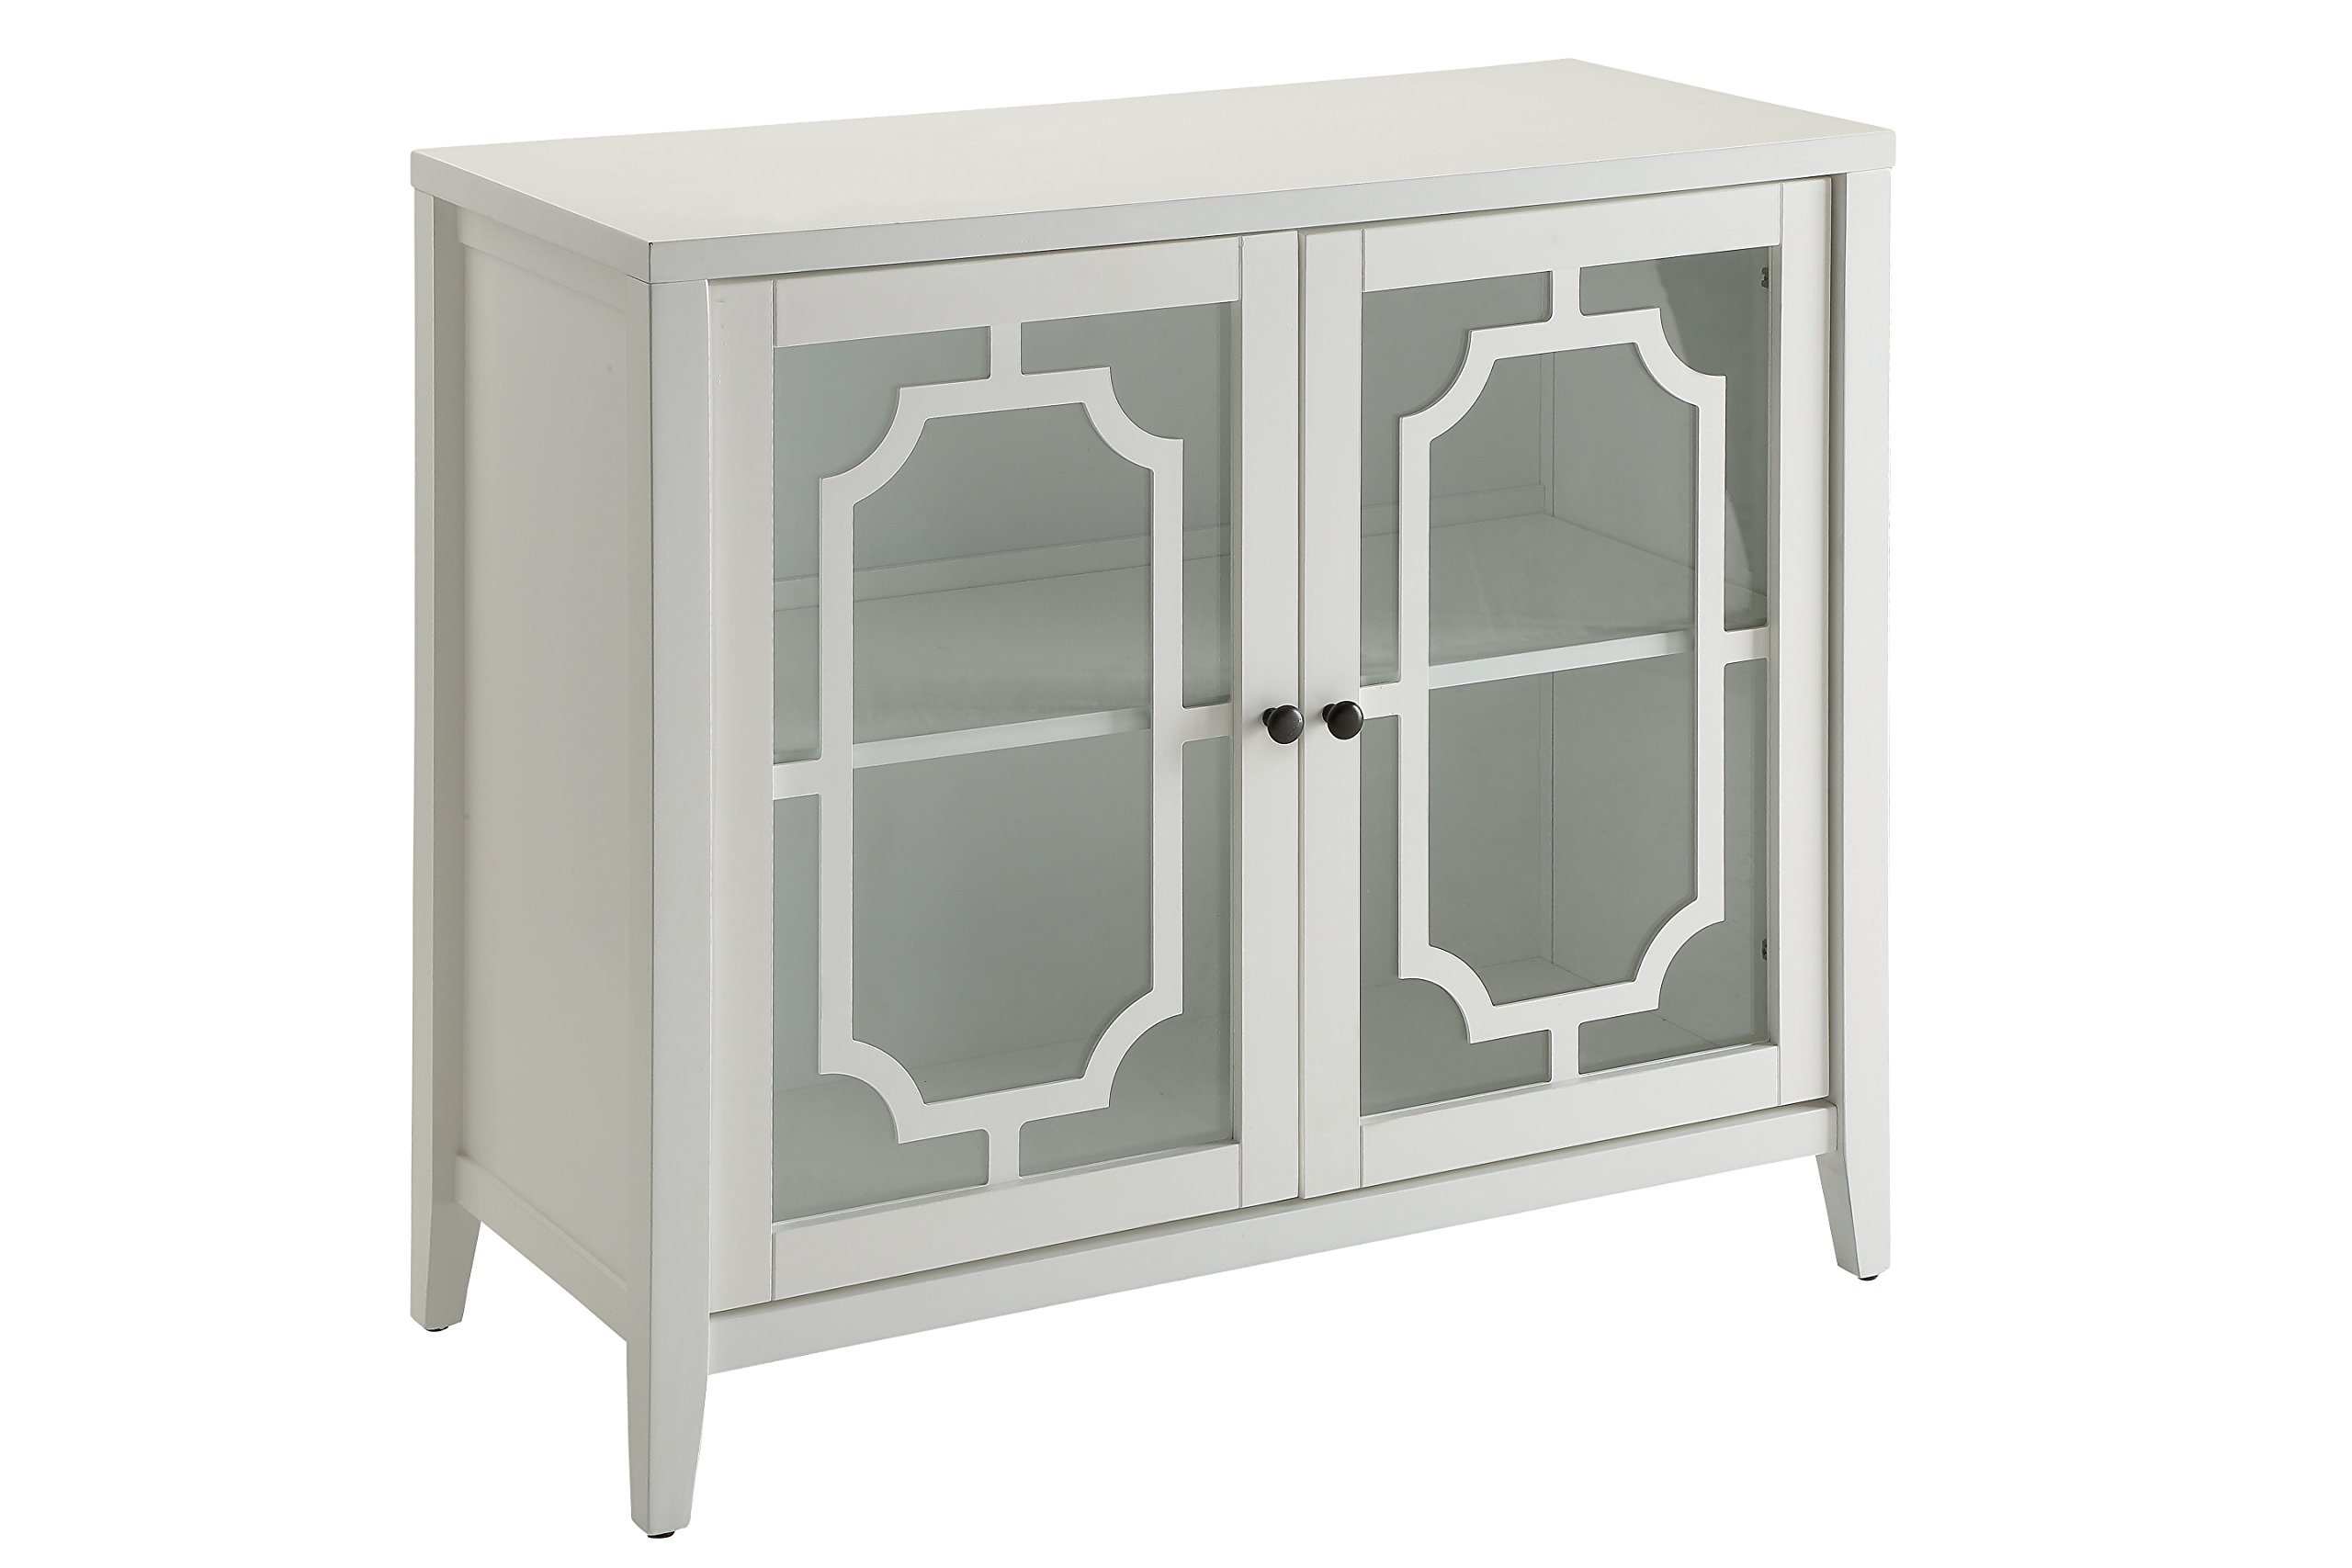 ACME Furniture cabinet, One Size, White by Acme Furniture